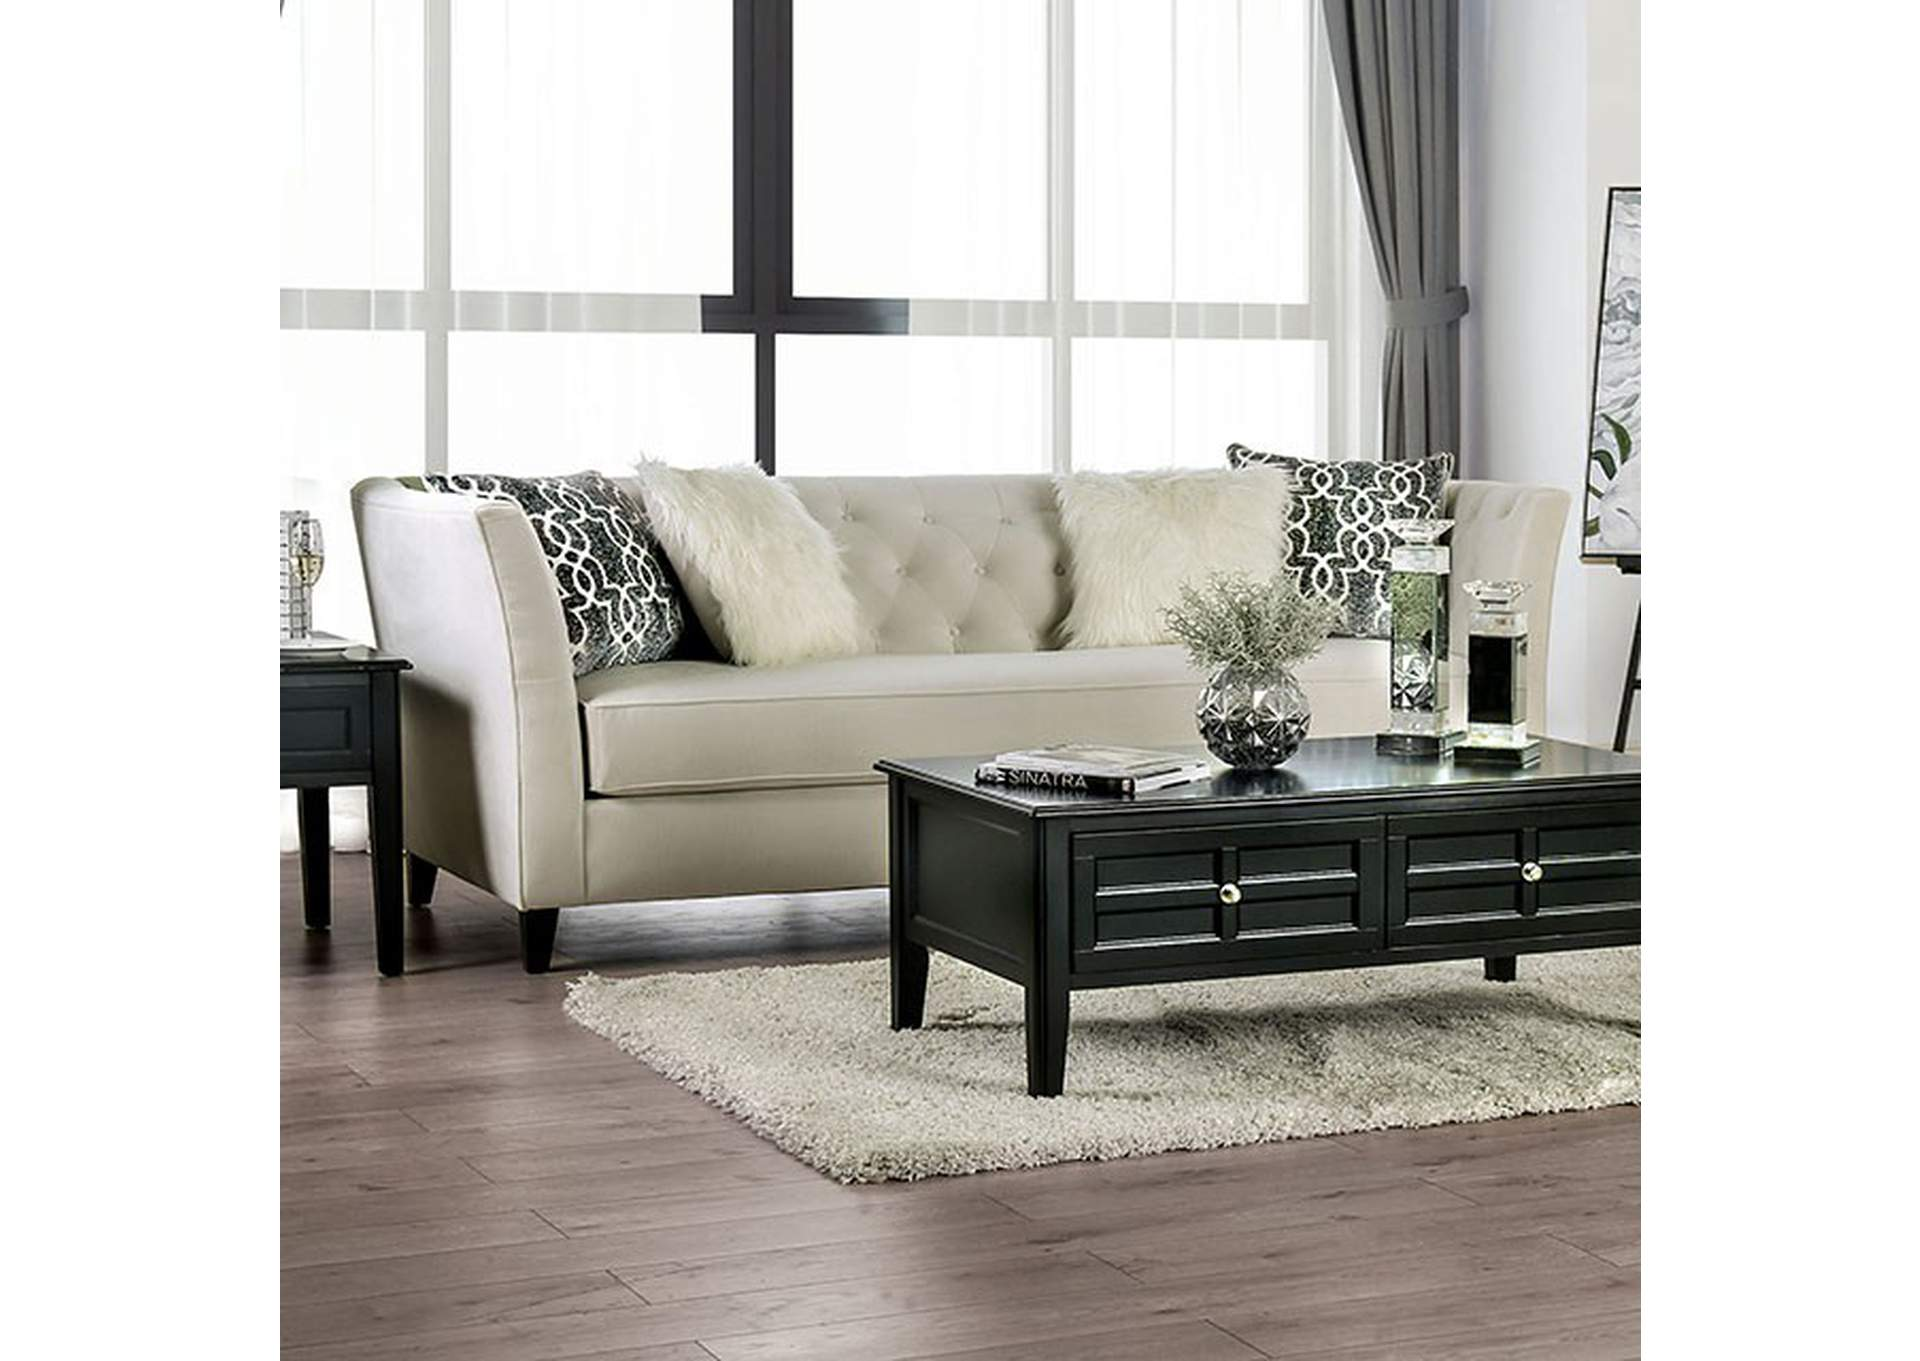 Monaghan Ivory Sofa,Furniture of America